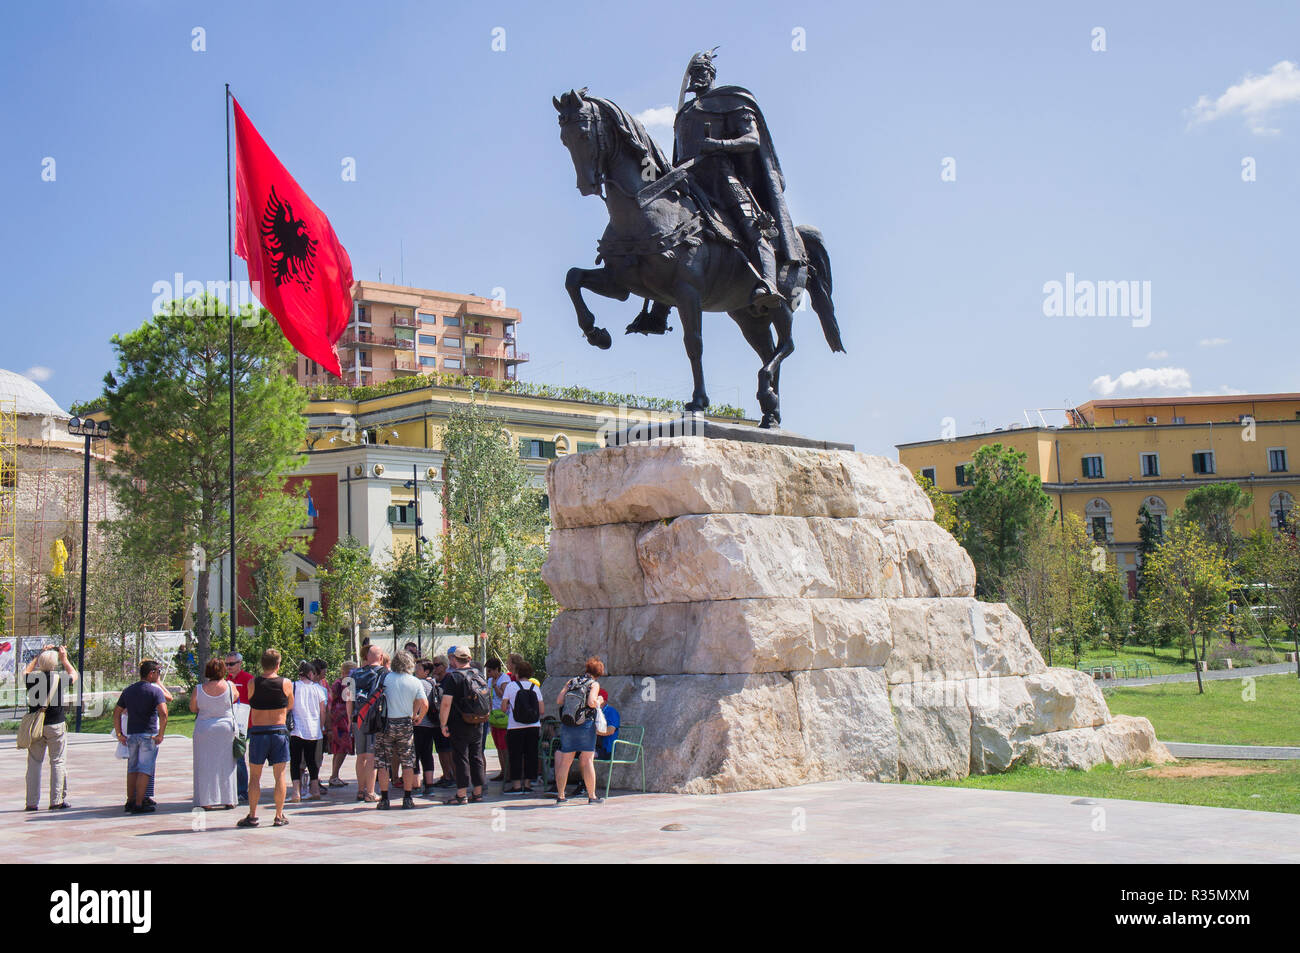 The Skanderbeg equestrian statue in Skanderbeg Square in Tirana, the capital and biggest city of Albania. September 7, 2018. The large statue of Skand - Stock Image